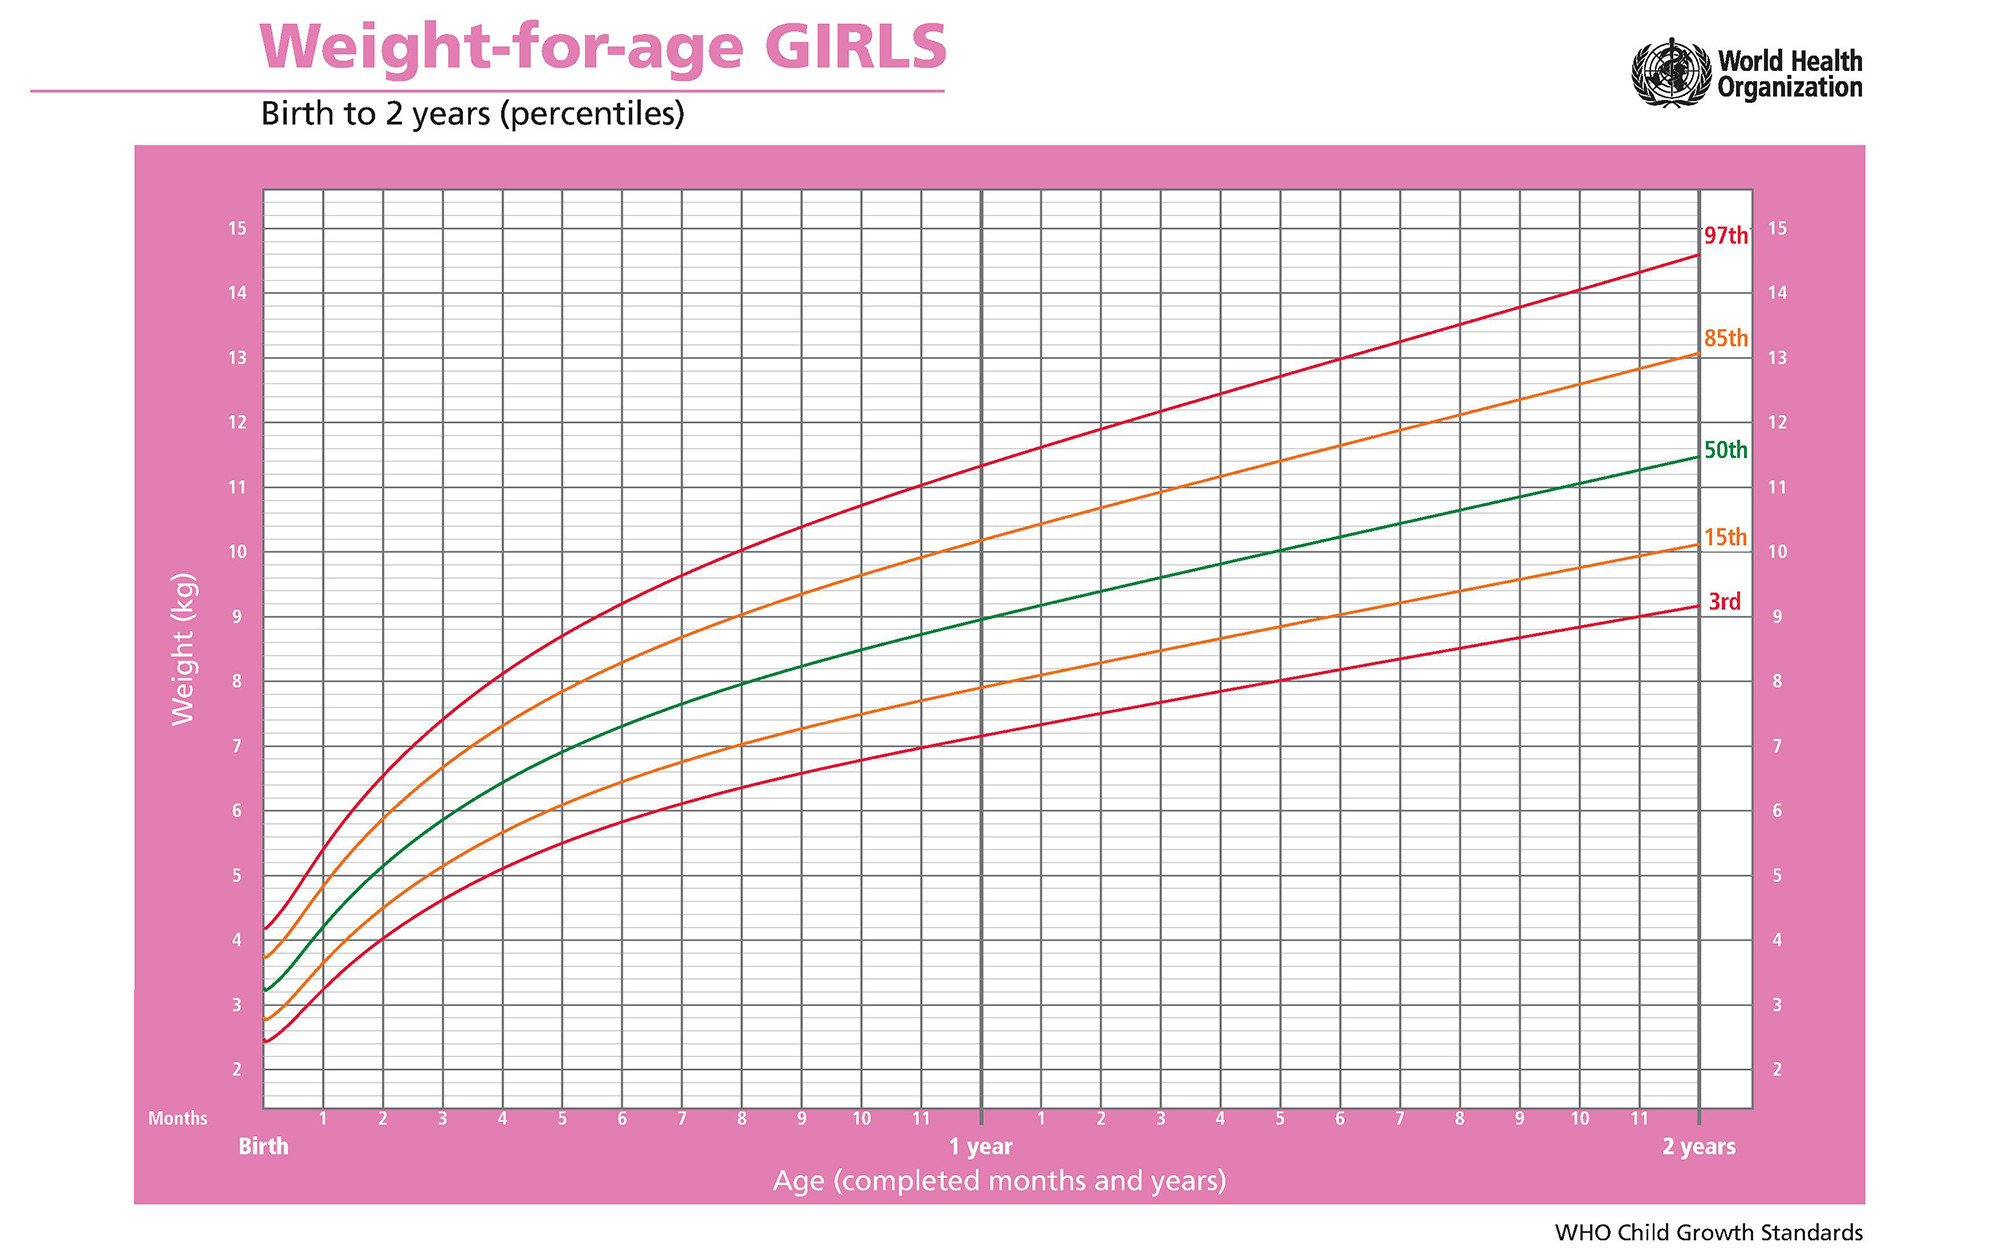 WHO Growth Chart - Weight-for-age Girls